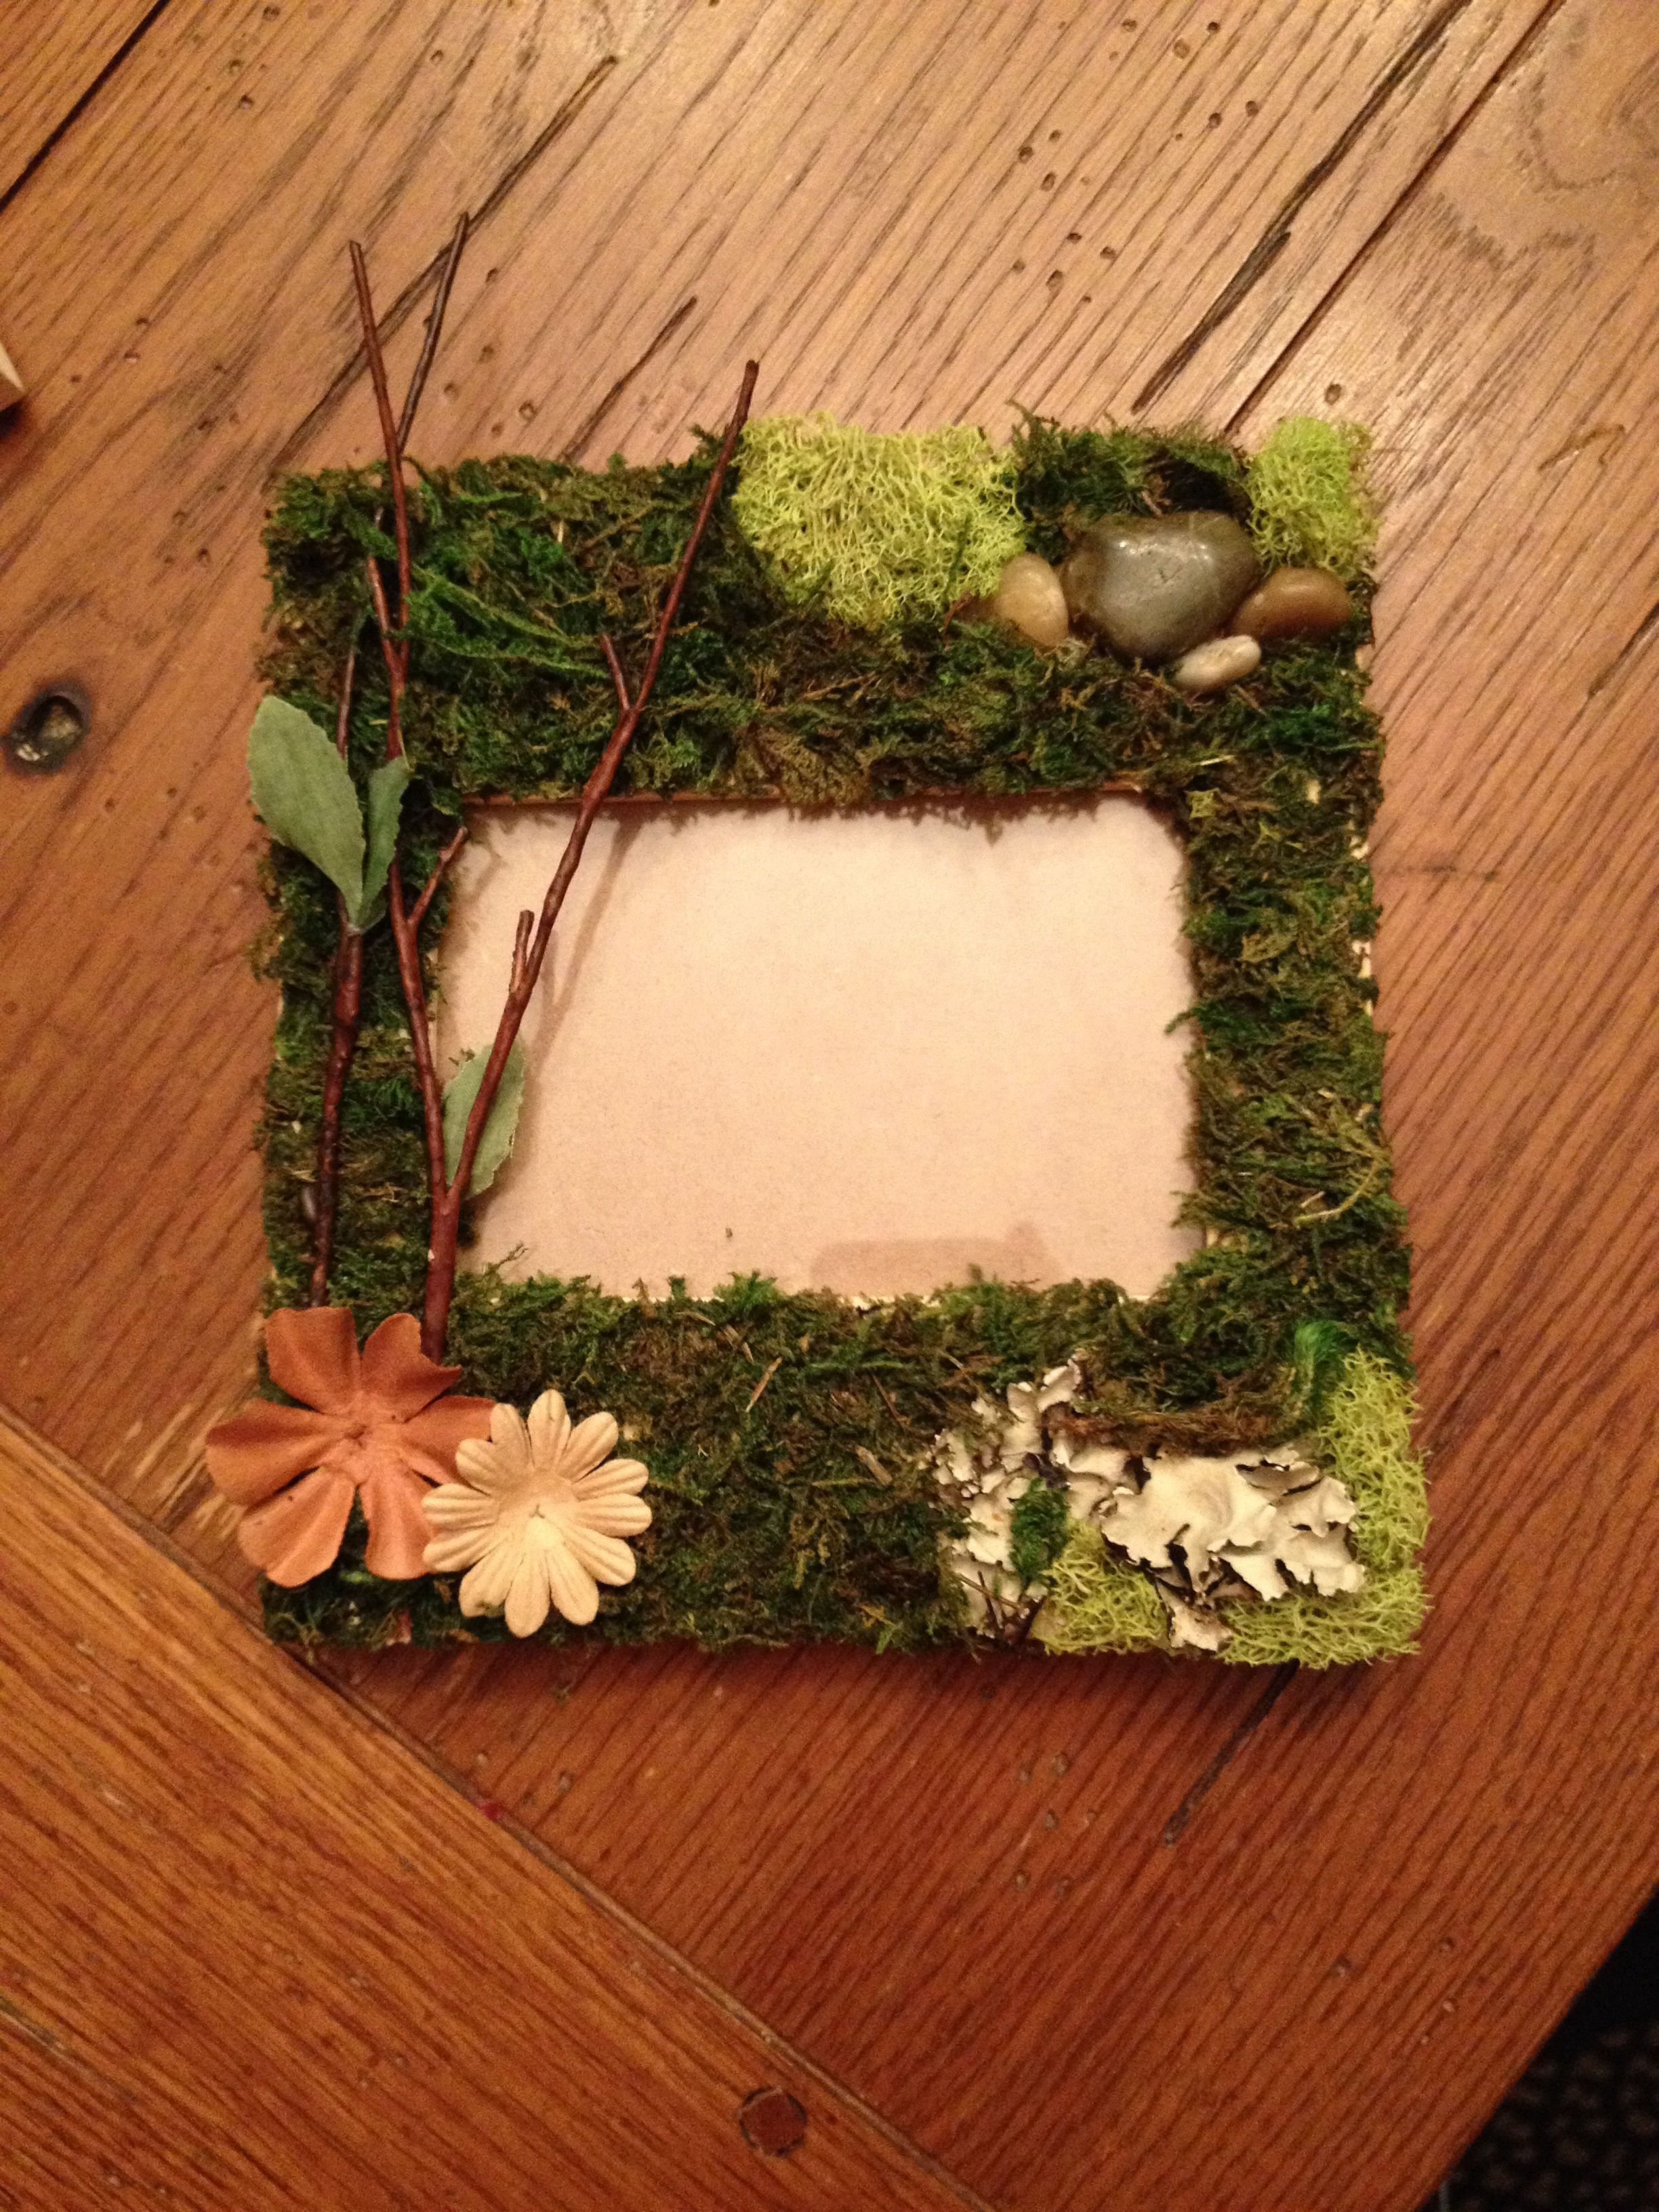 Nature Frame I Made For A Nature Forest Themed Event This